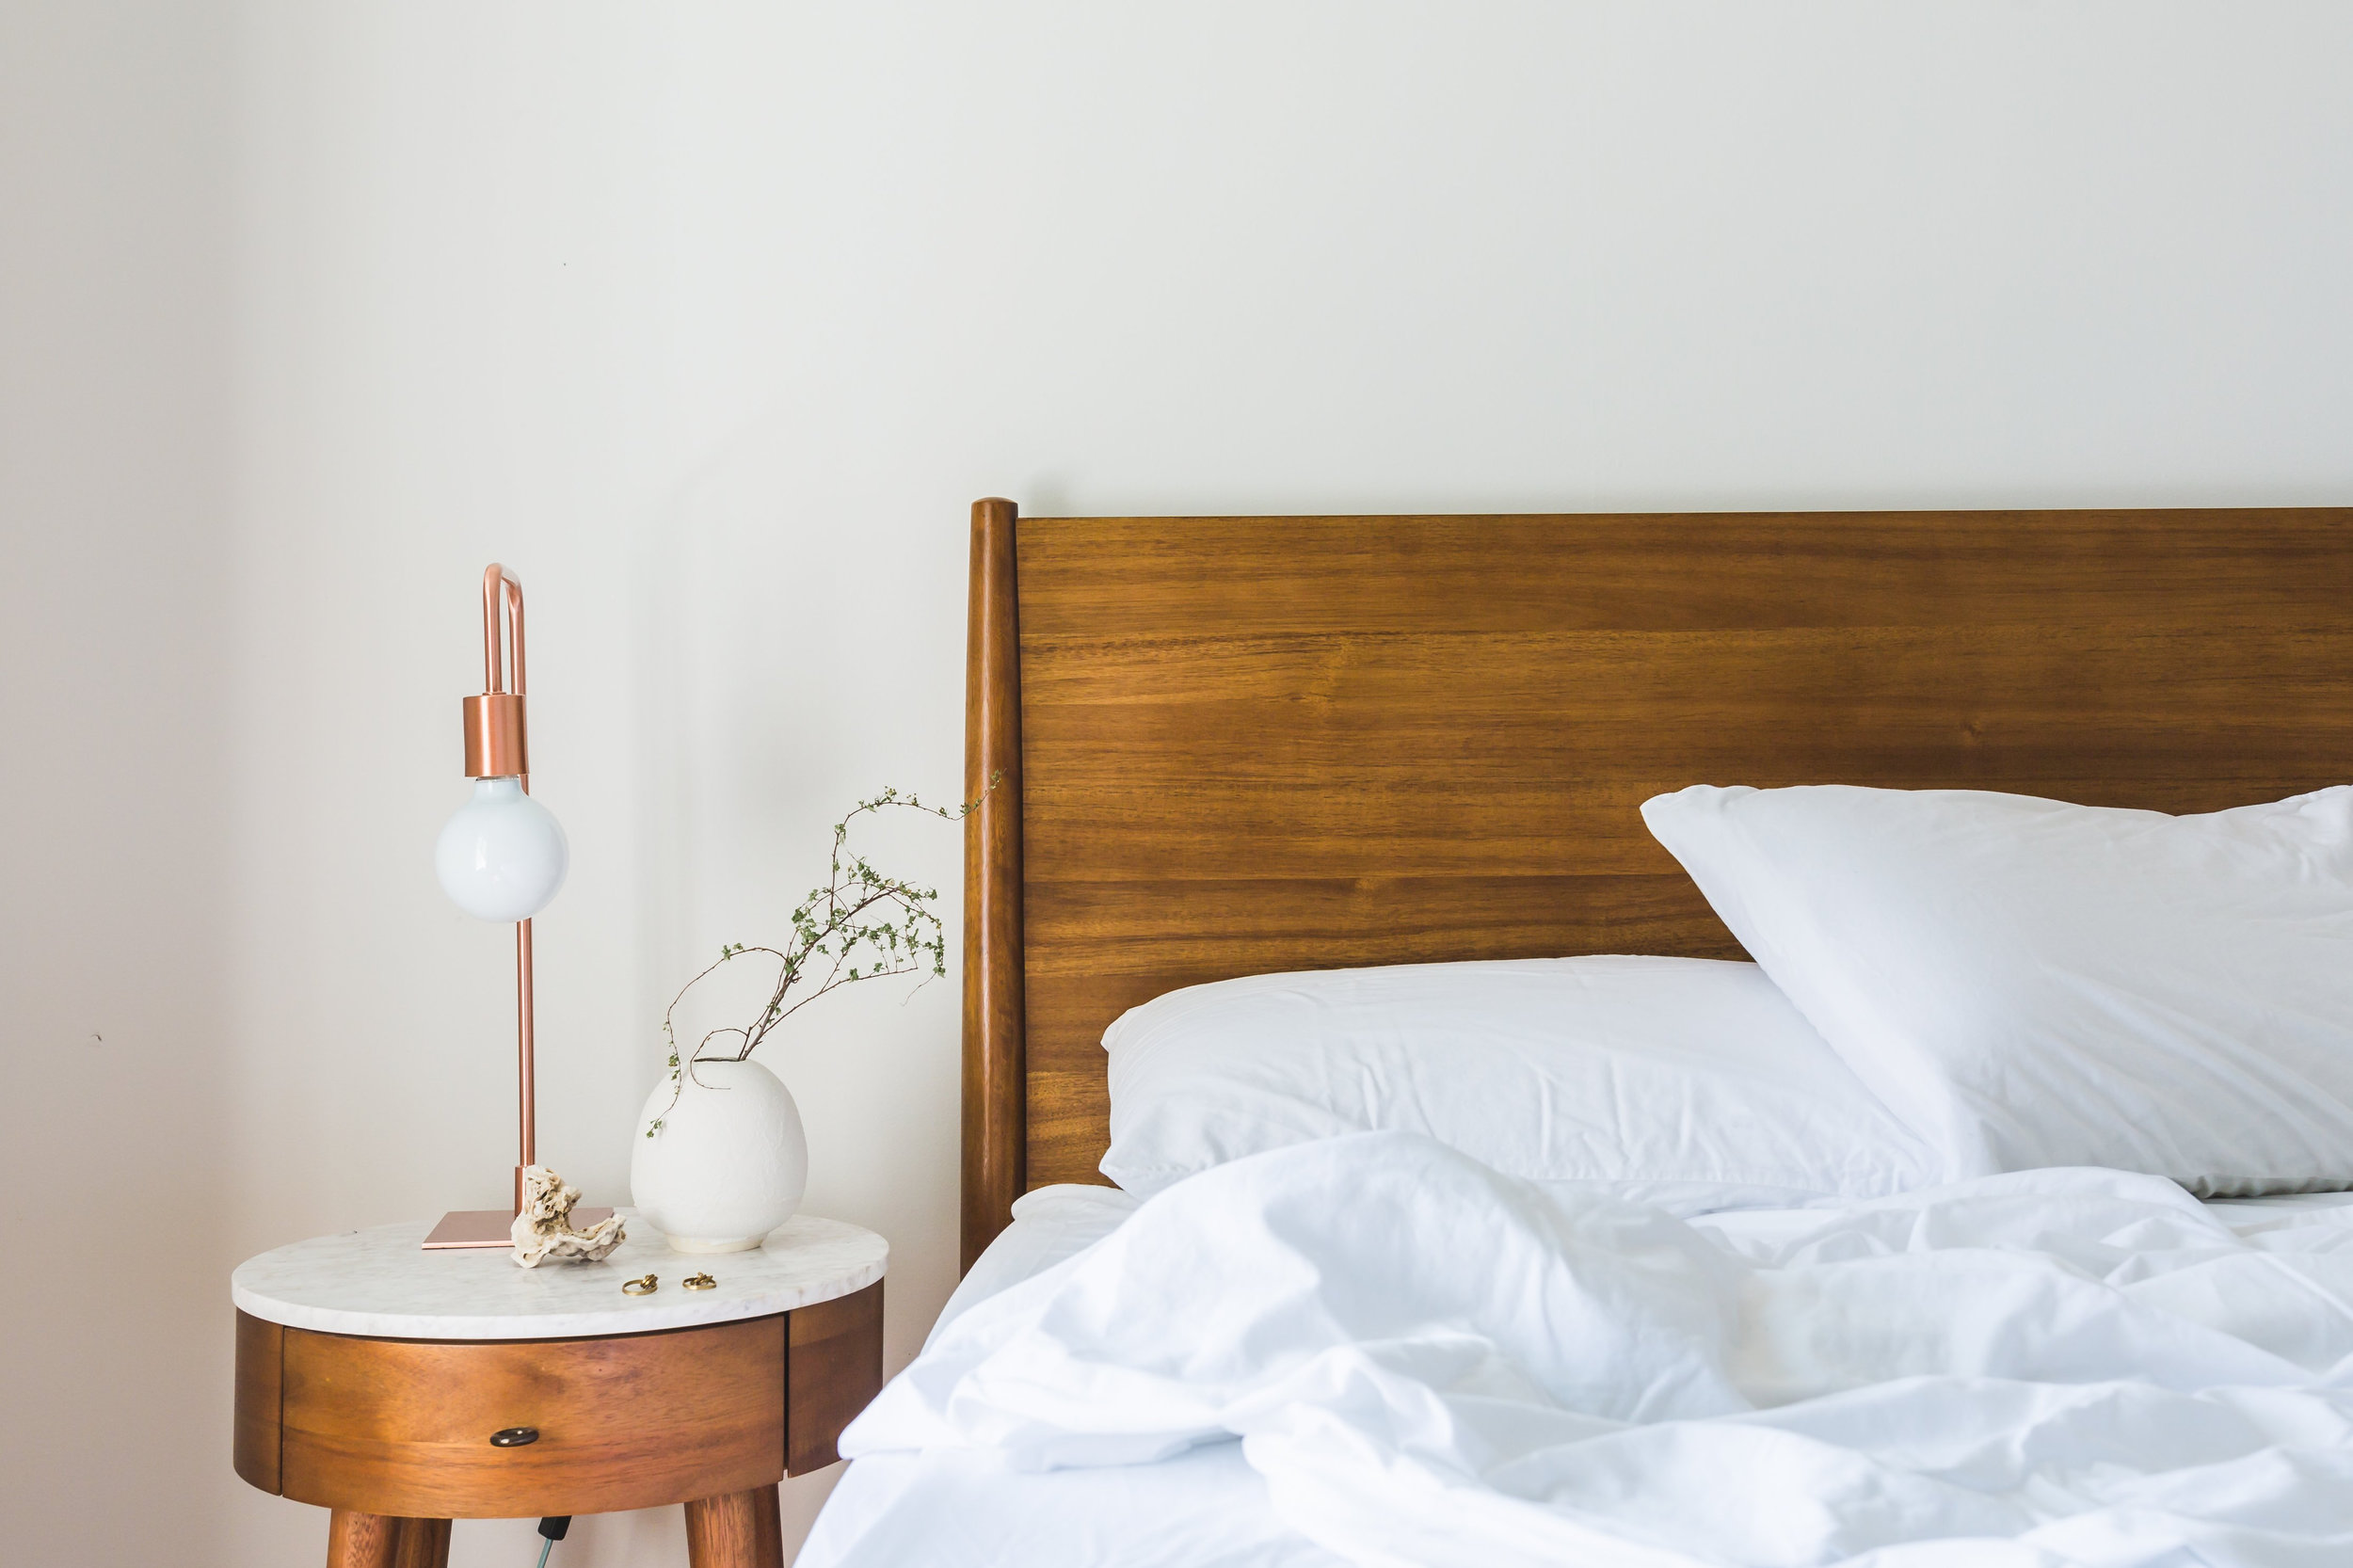 Canva - White Bedspread Beside Nightstand With White and Copper Table Lamp.jpg